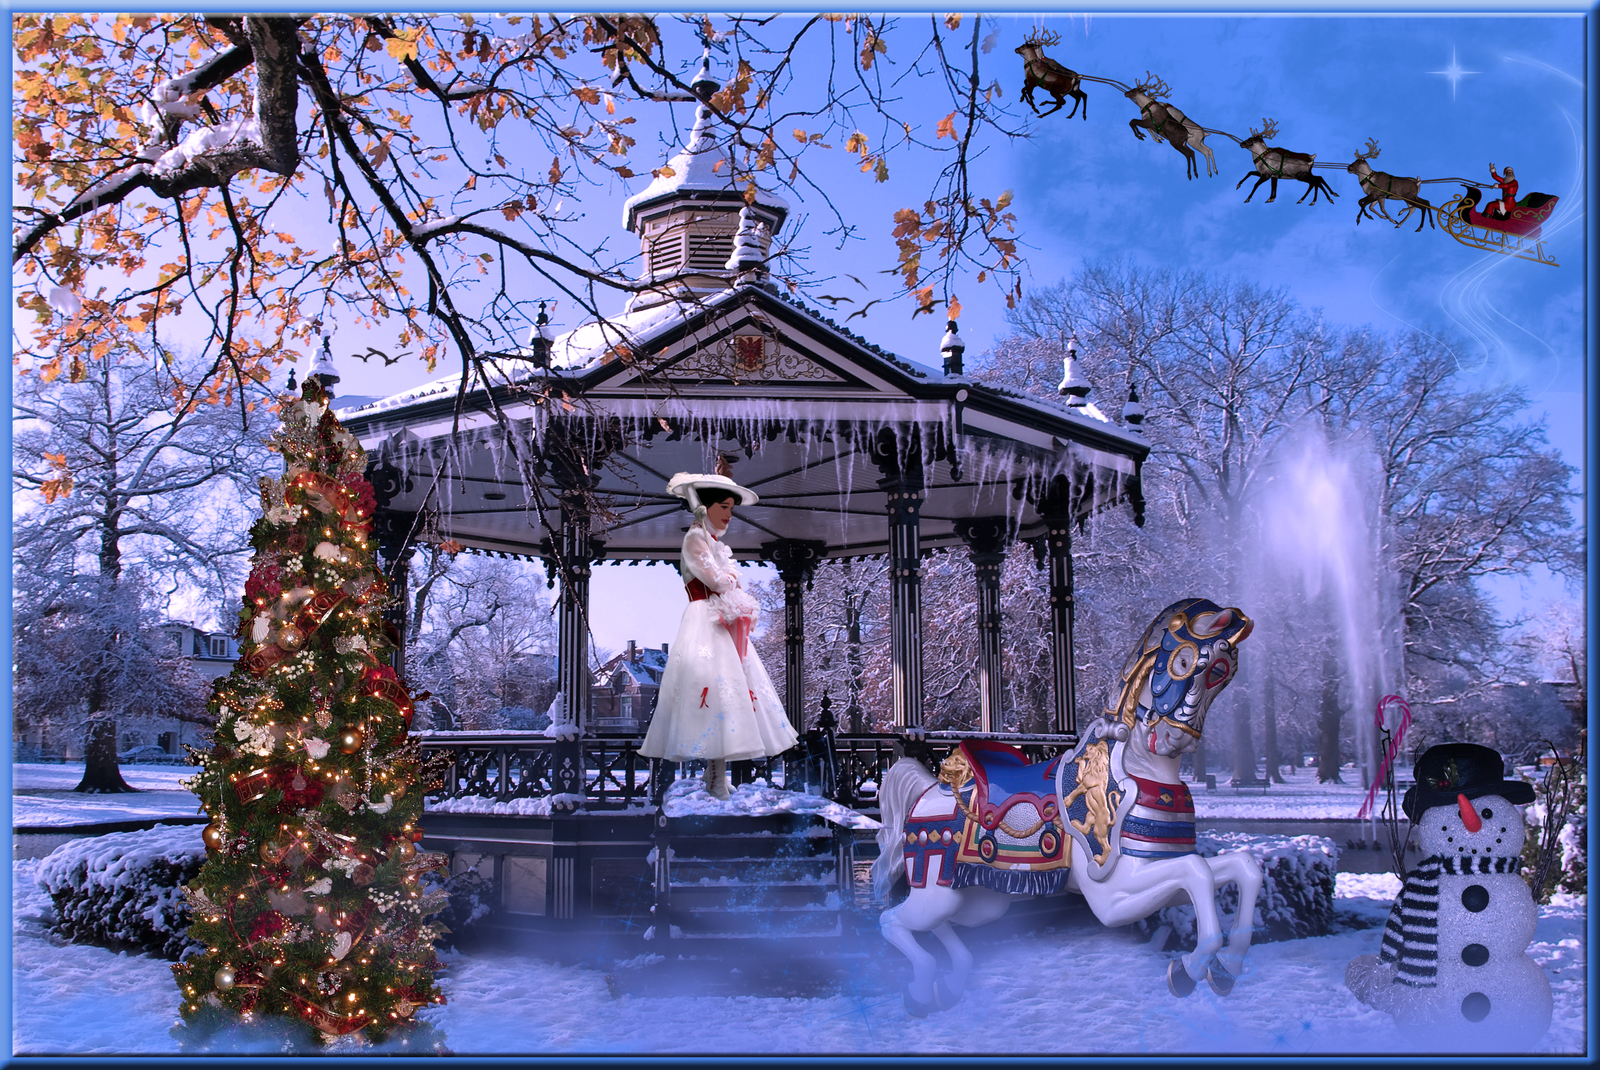 Mary poppins christmas fun by wdwparksgal on deviantart - Mary poppins wallpaper ...